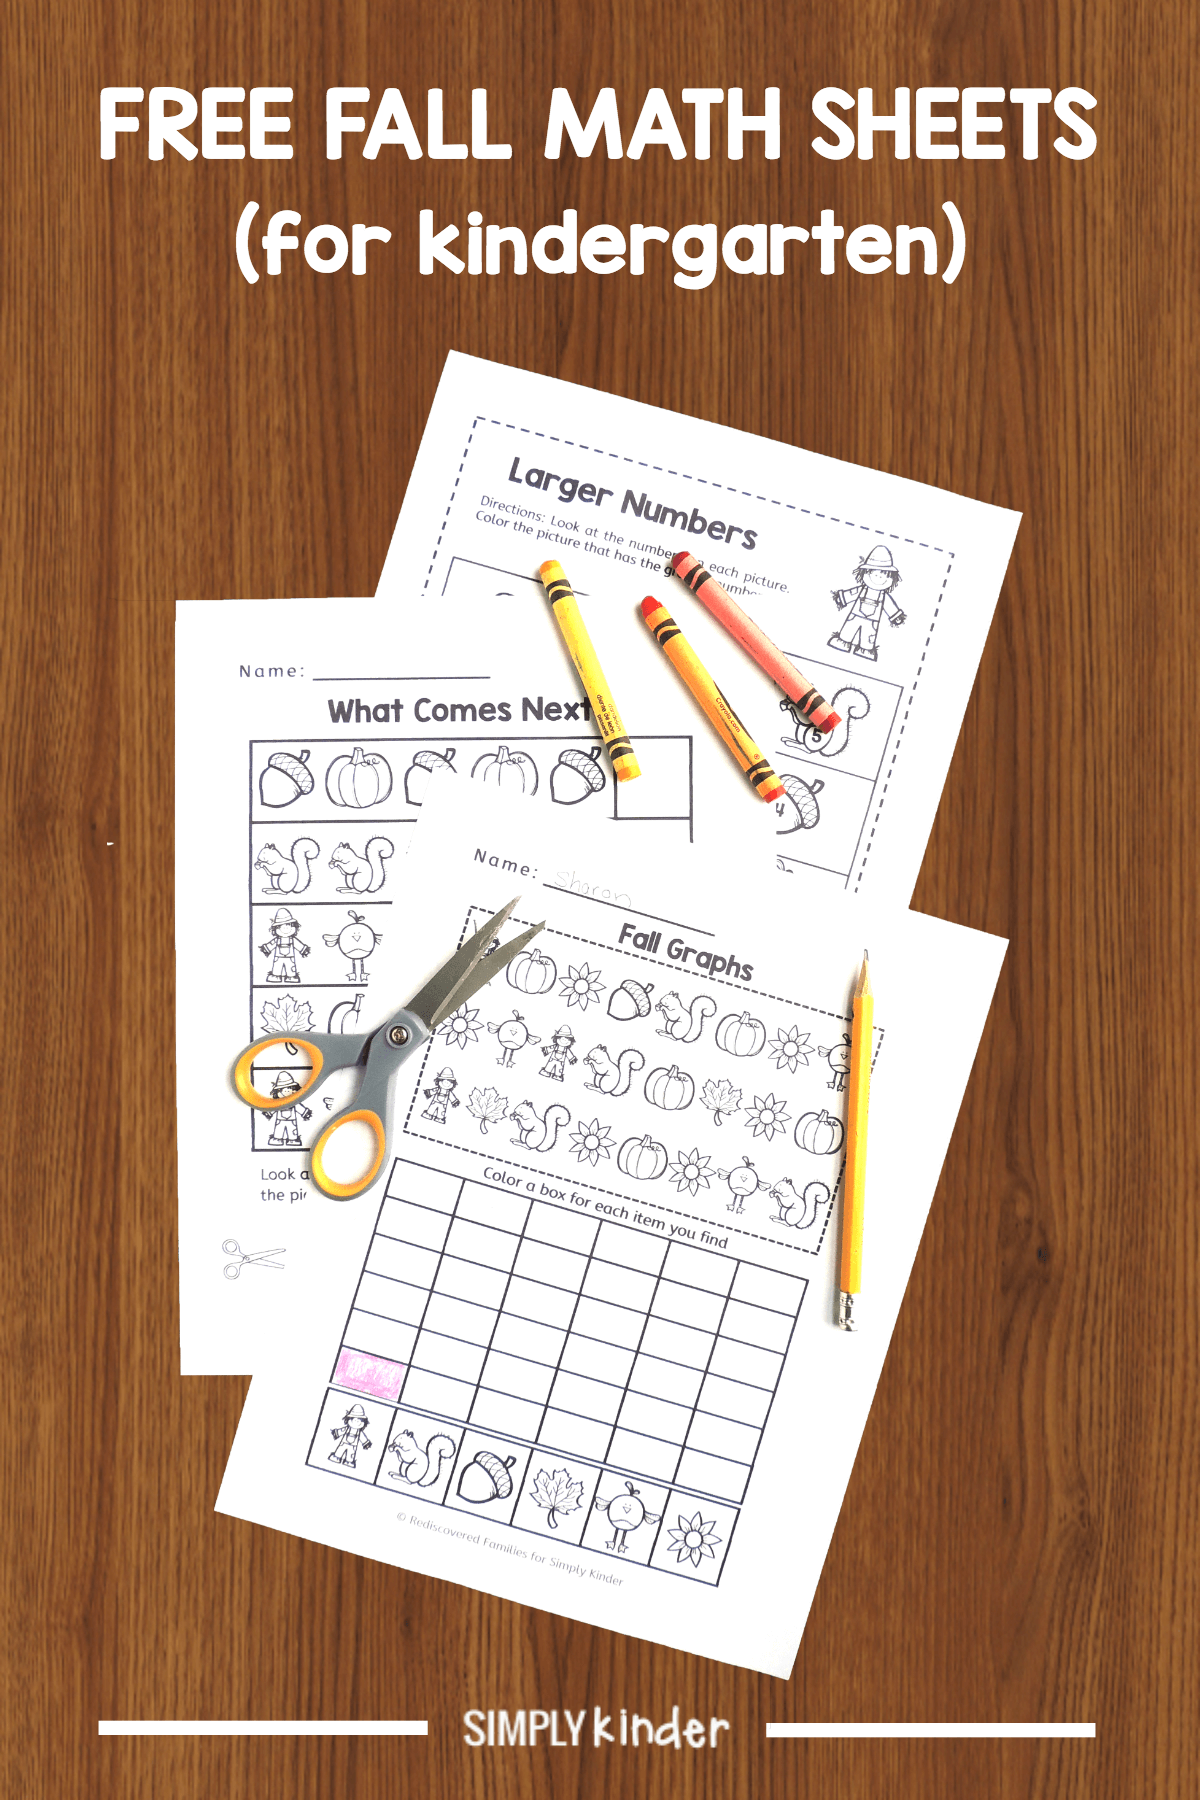 Free Fall Math Worksheets To Use With Kinders